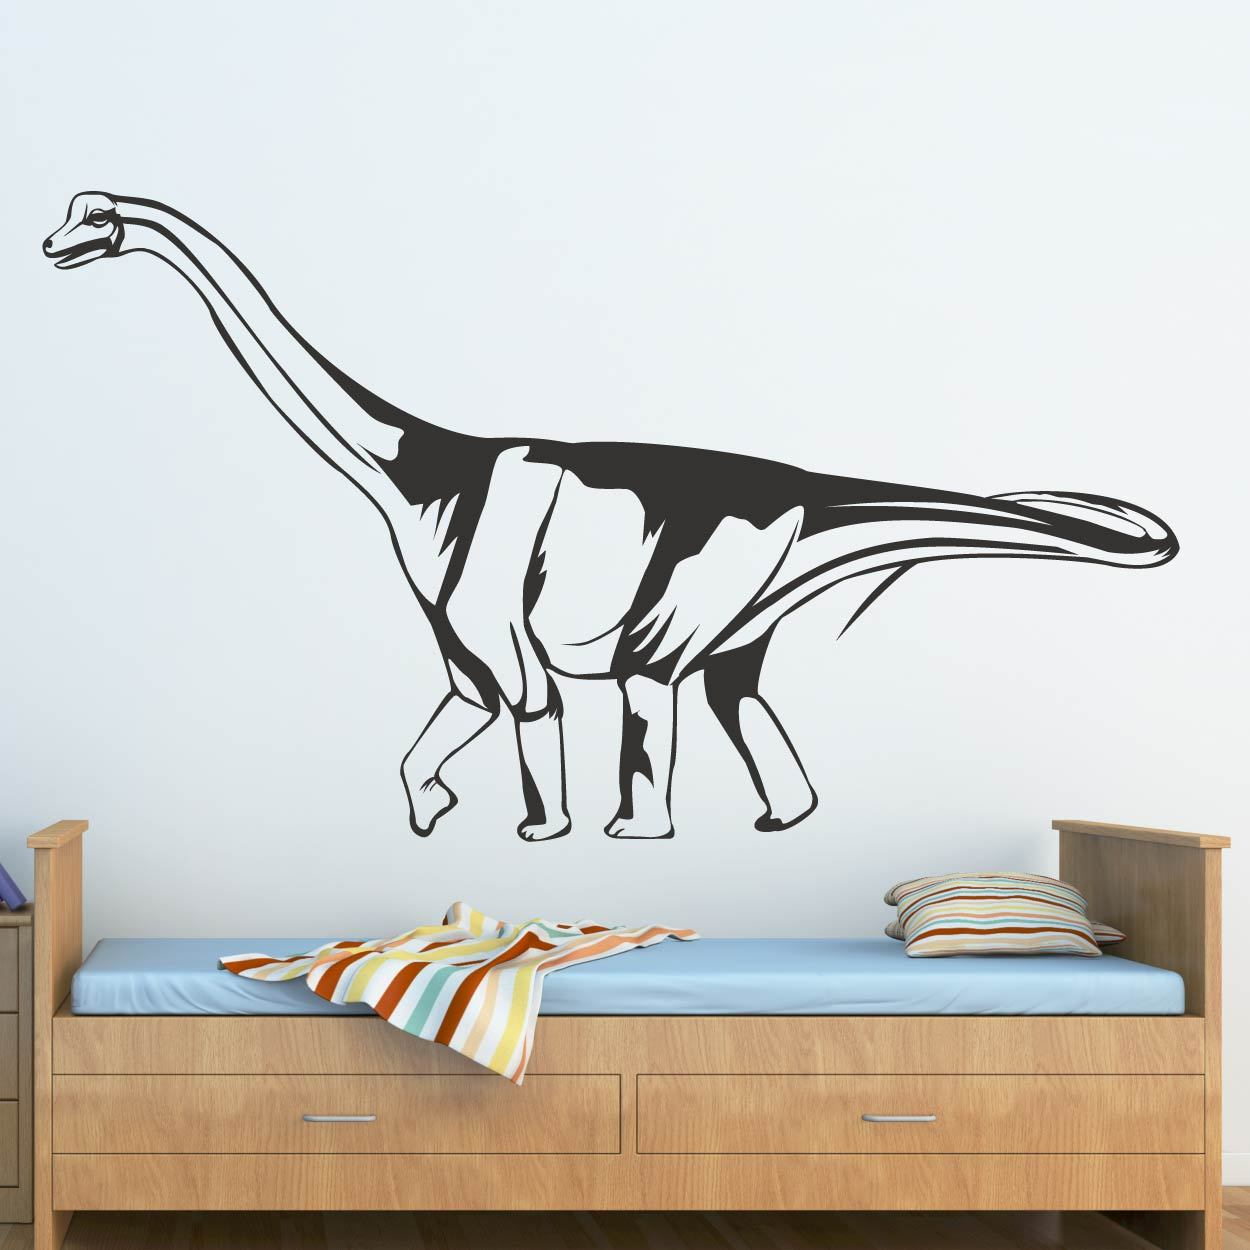 Saltasaurus Dinosaur Wall Art Sticker (AS10339) - Apex Stickers